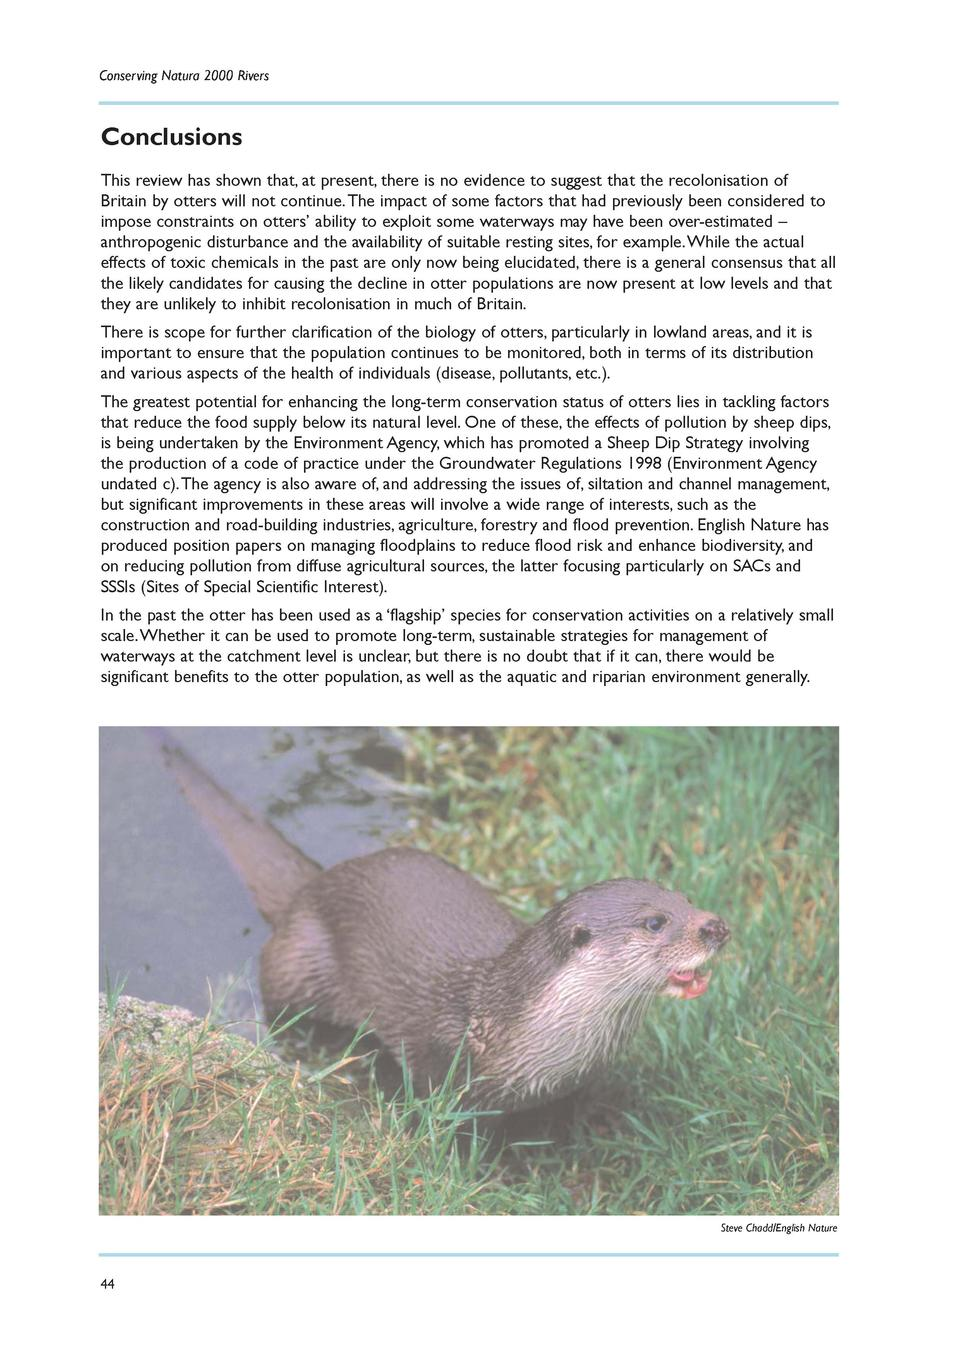 Conserving Natura 2000 Rivers  Conclusions This review has shown that, at present, there is no evidence to suggest that th...